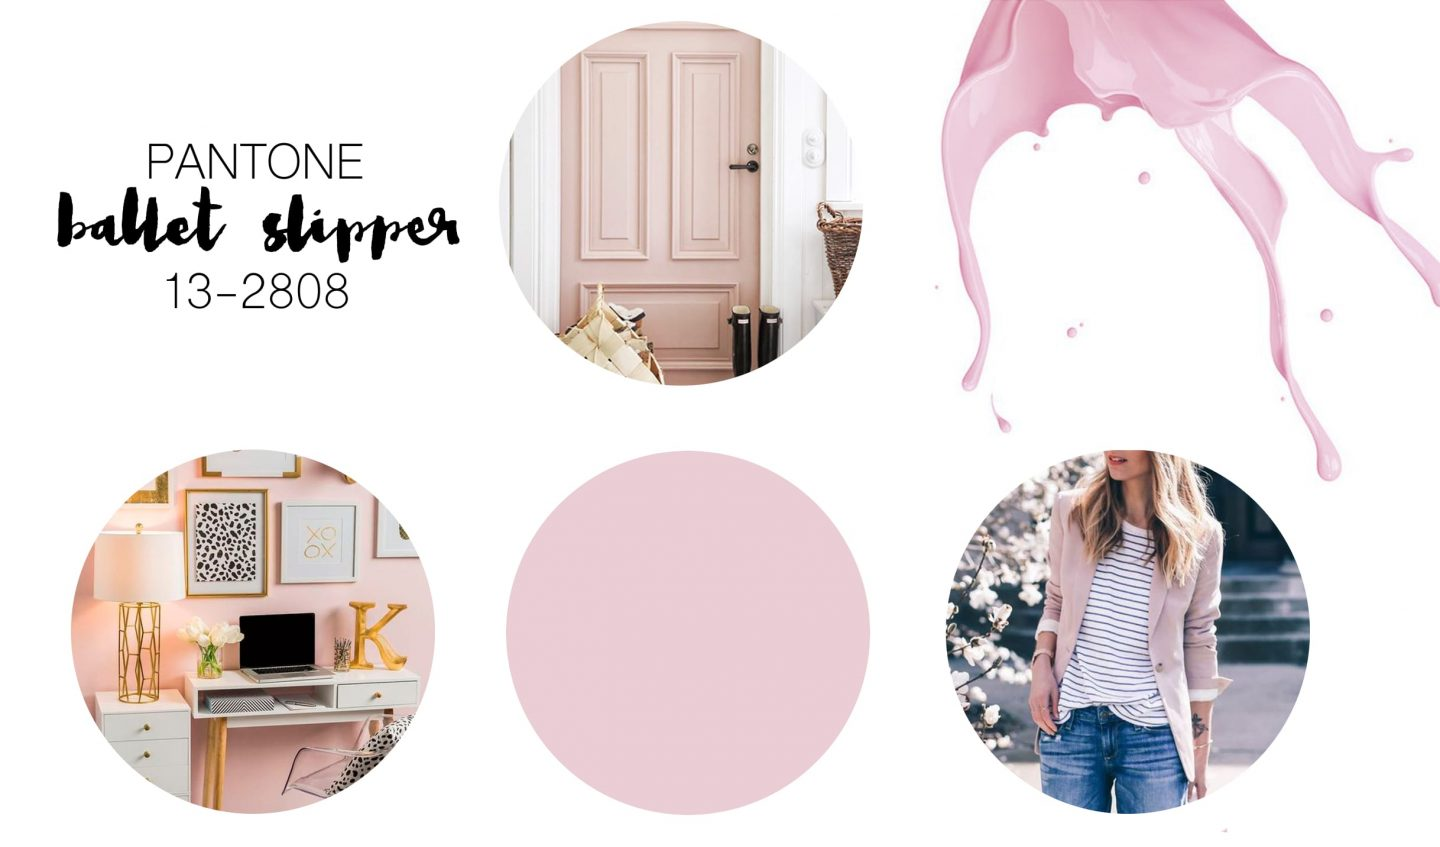 TRENDS: Pantone Herbstfarben | Part I